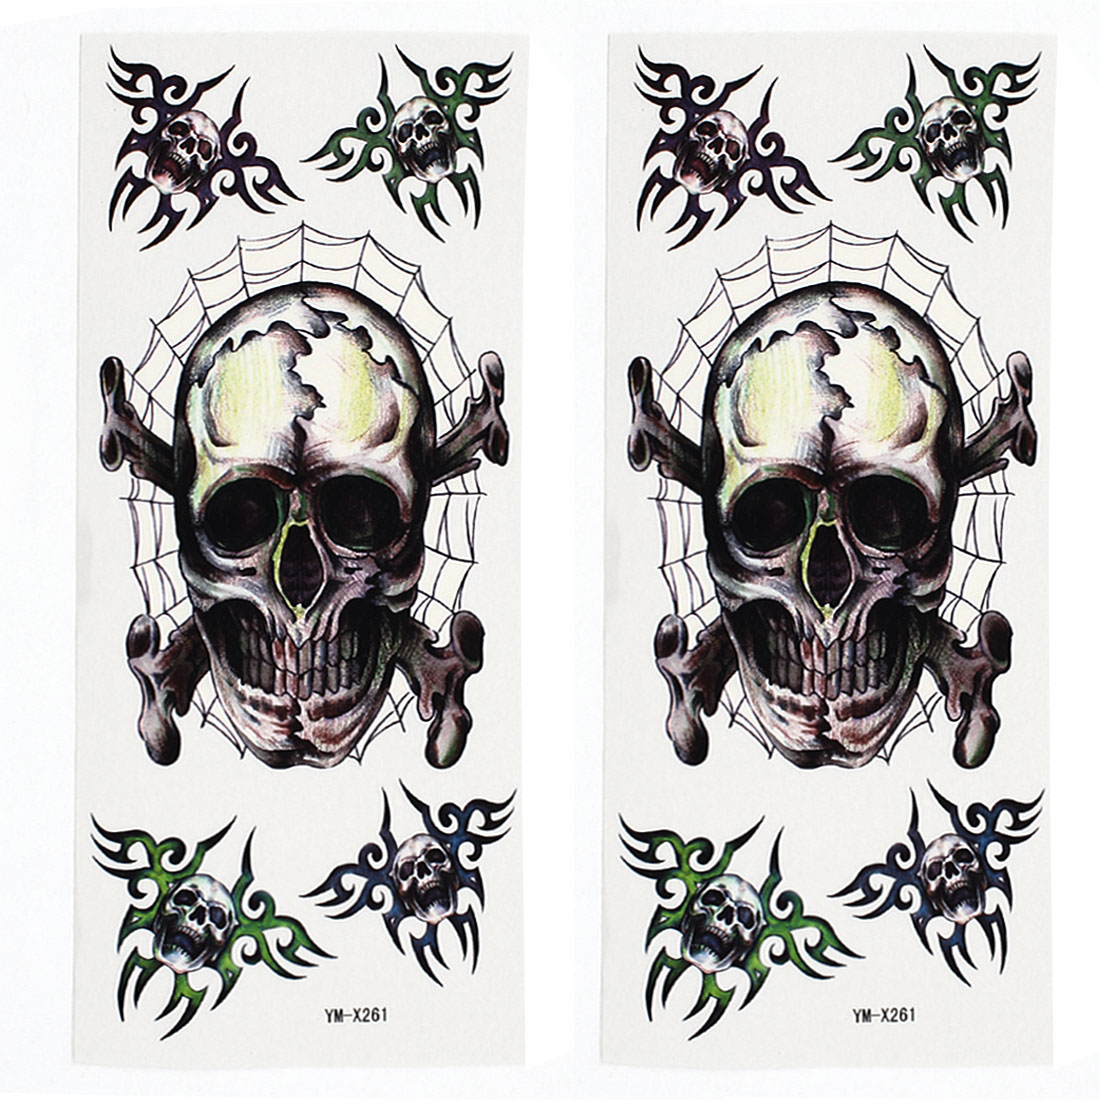 2 Sheets Removable Skull Pattern Paper Sticker Temporary Tattoos Colorful